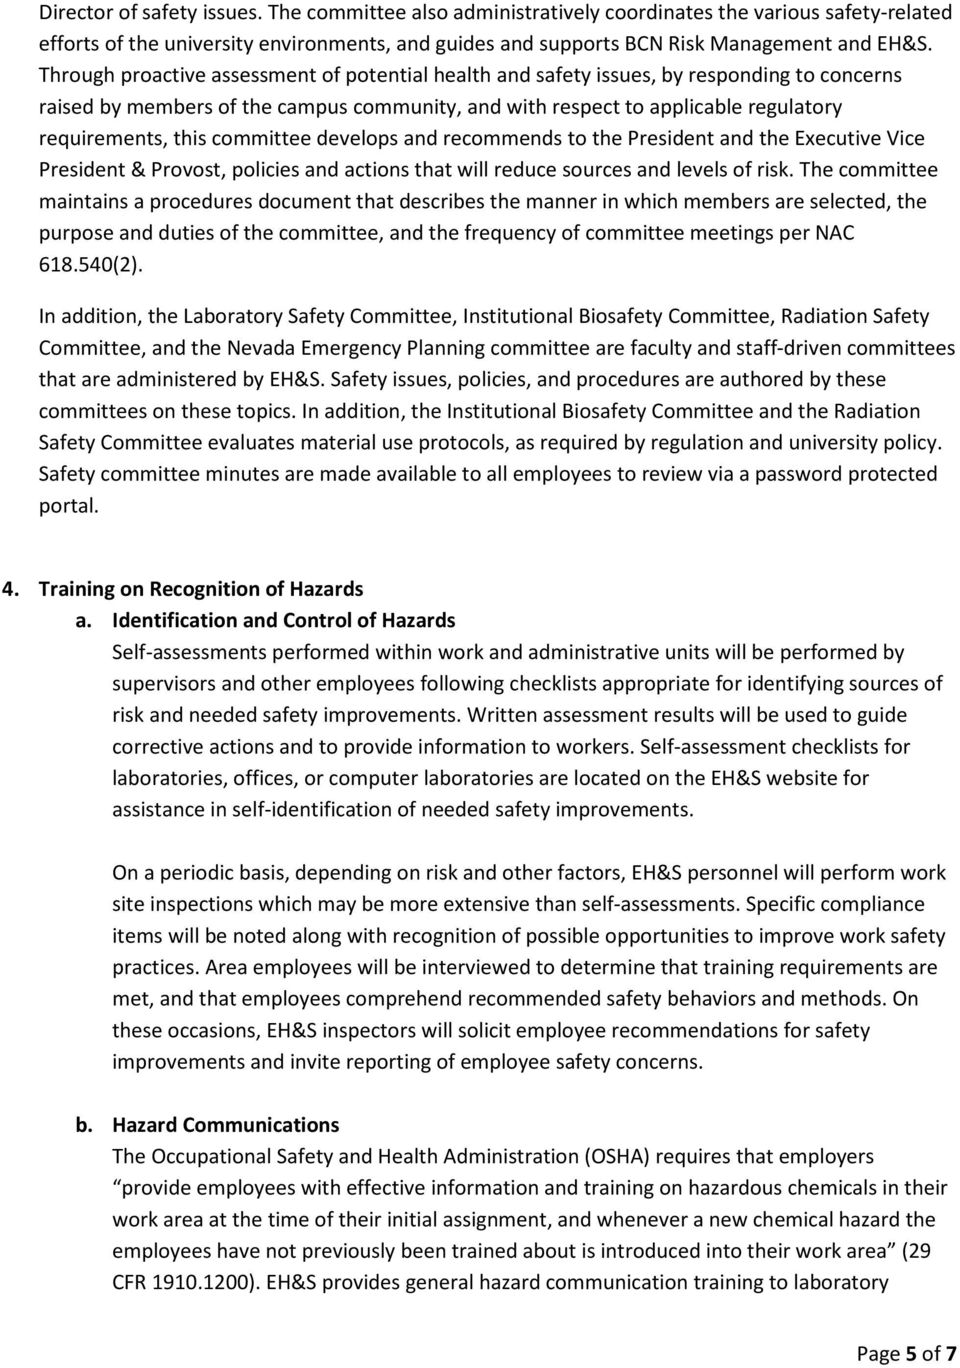 committee develops and recommends to the President and the Executive Vice President & Provost, policies and actions that will reduce sources and levels of risk.